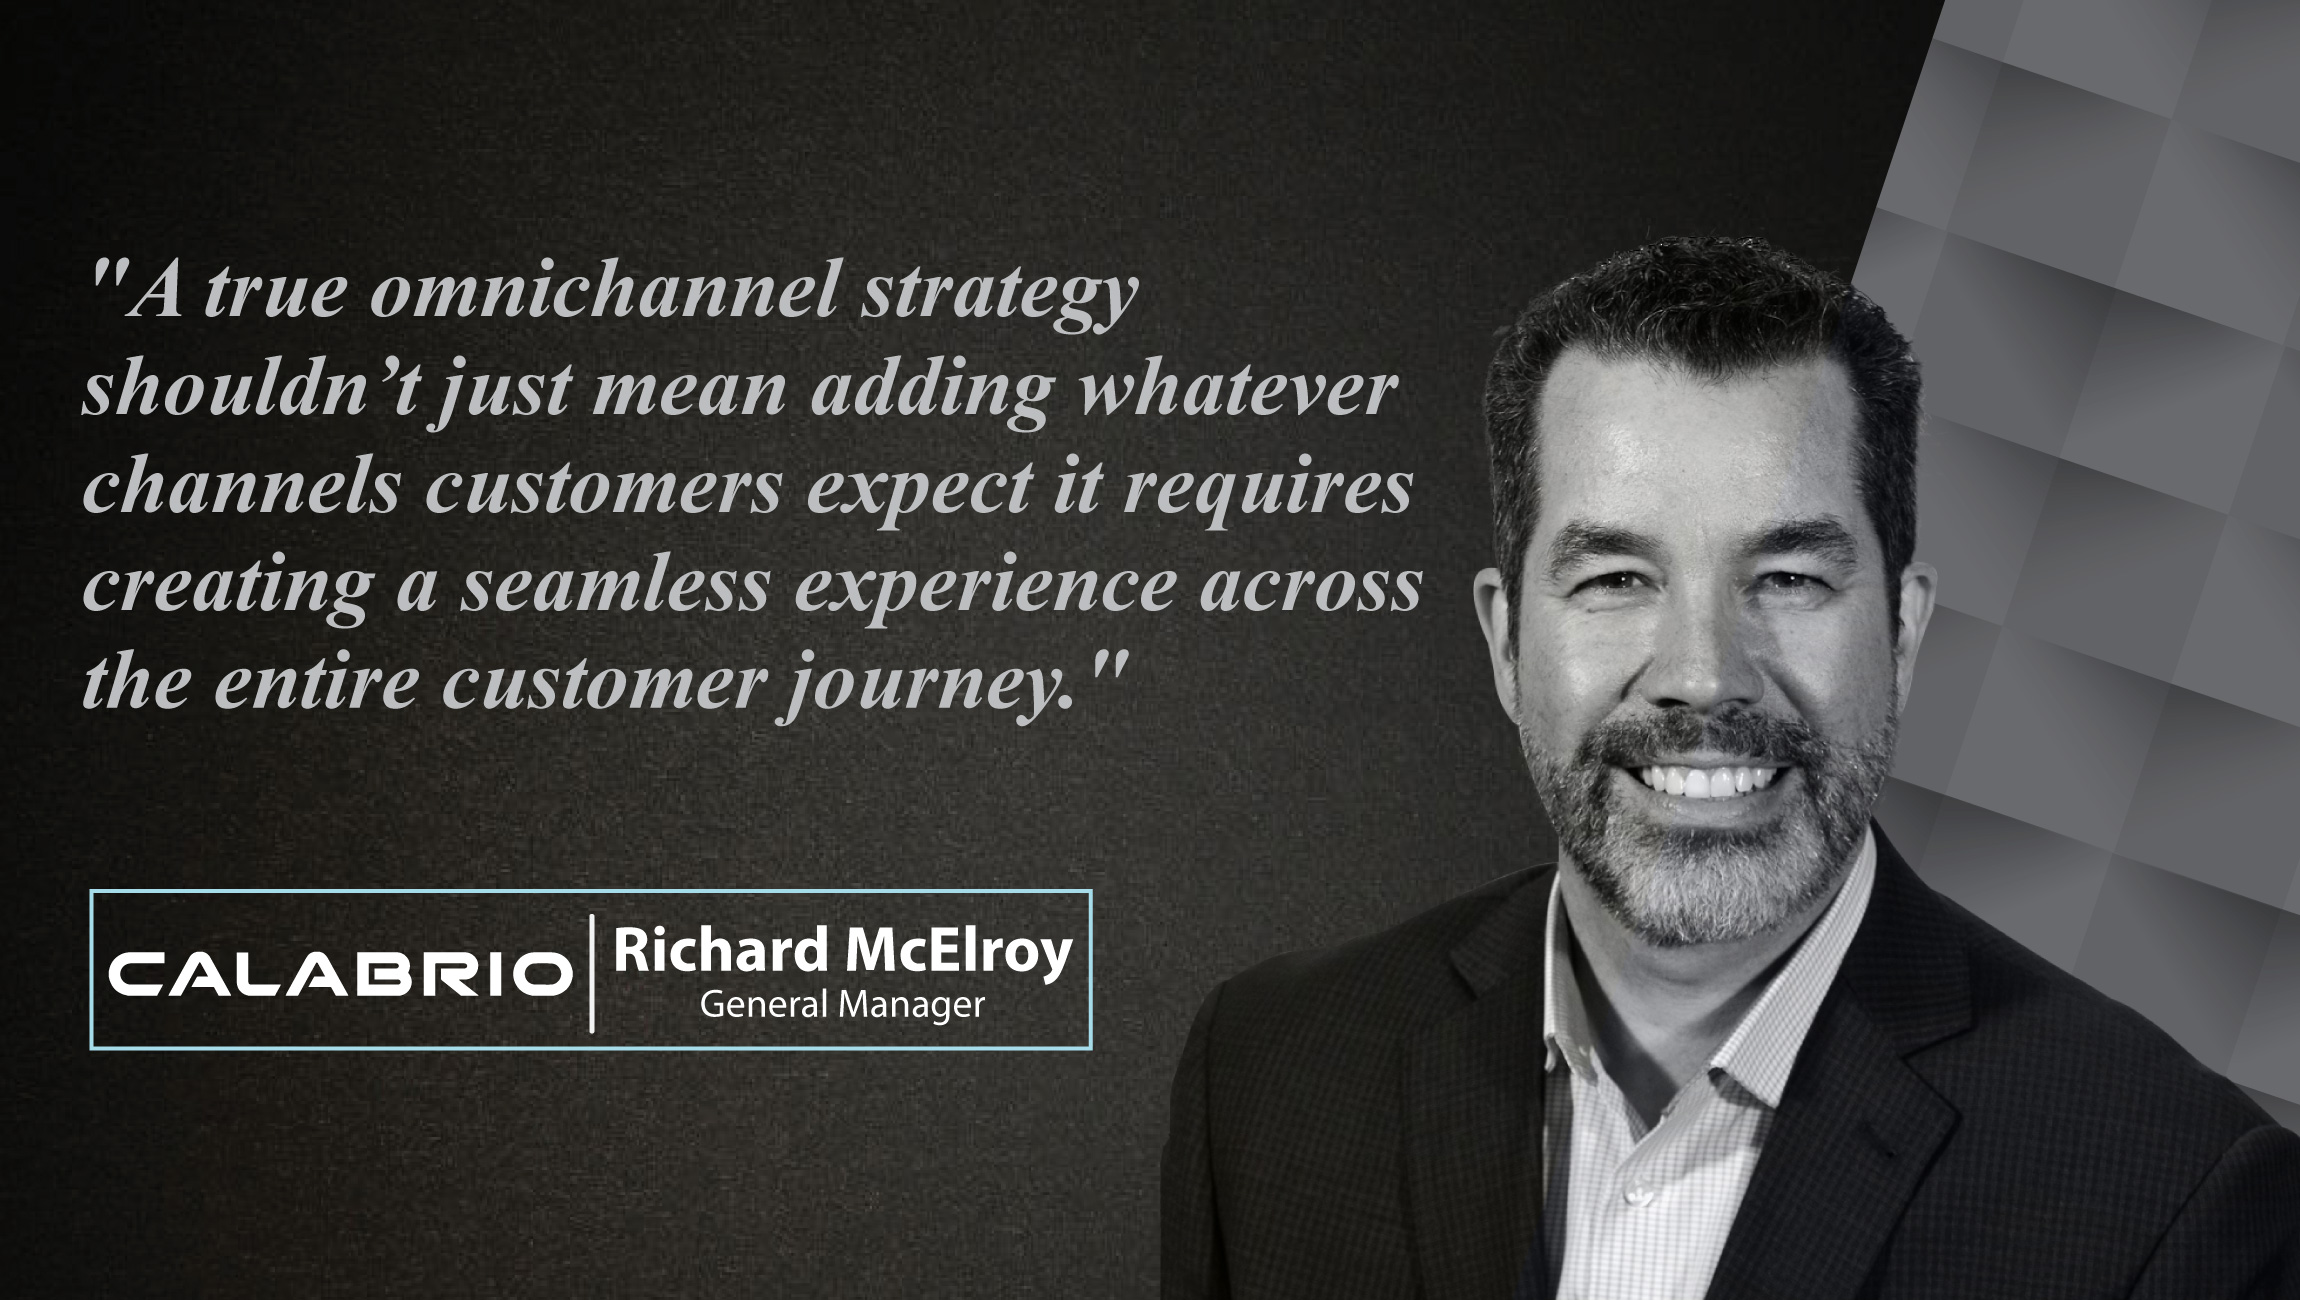 Interview with Richard McElroy, General Manager at Calabrio Canada & Innovation Center